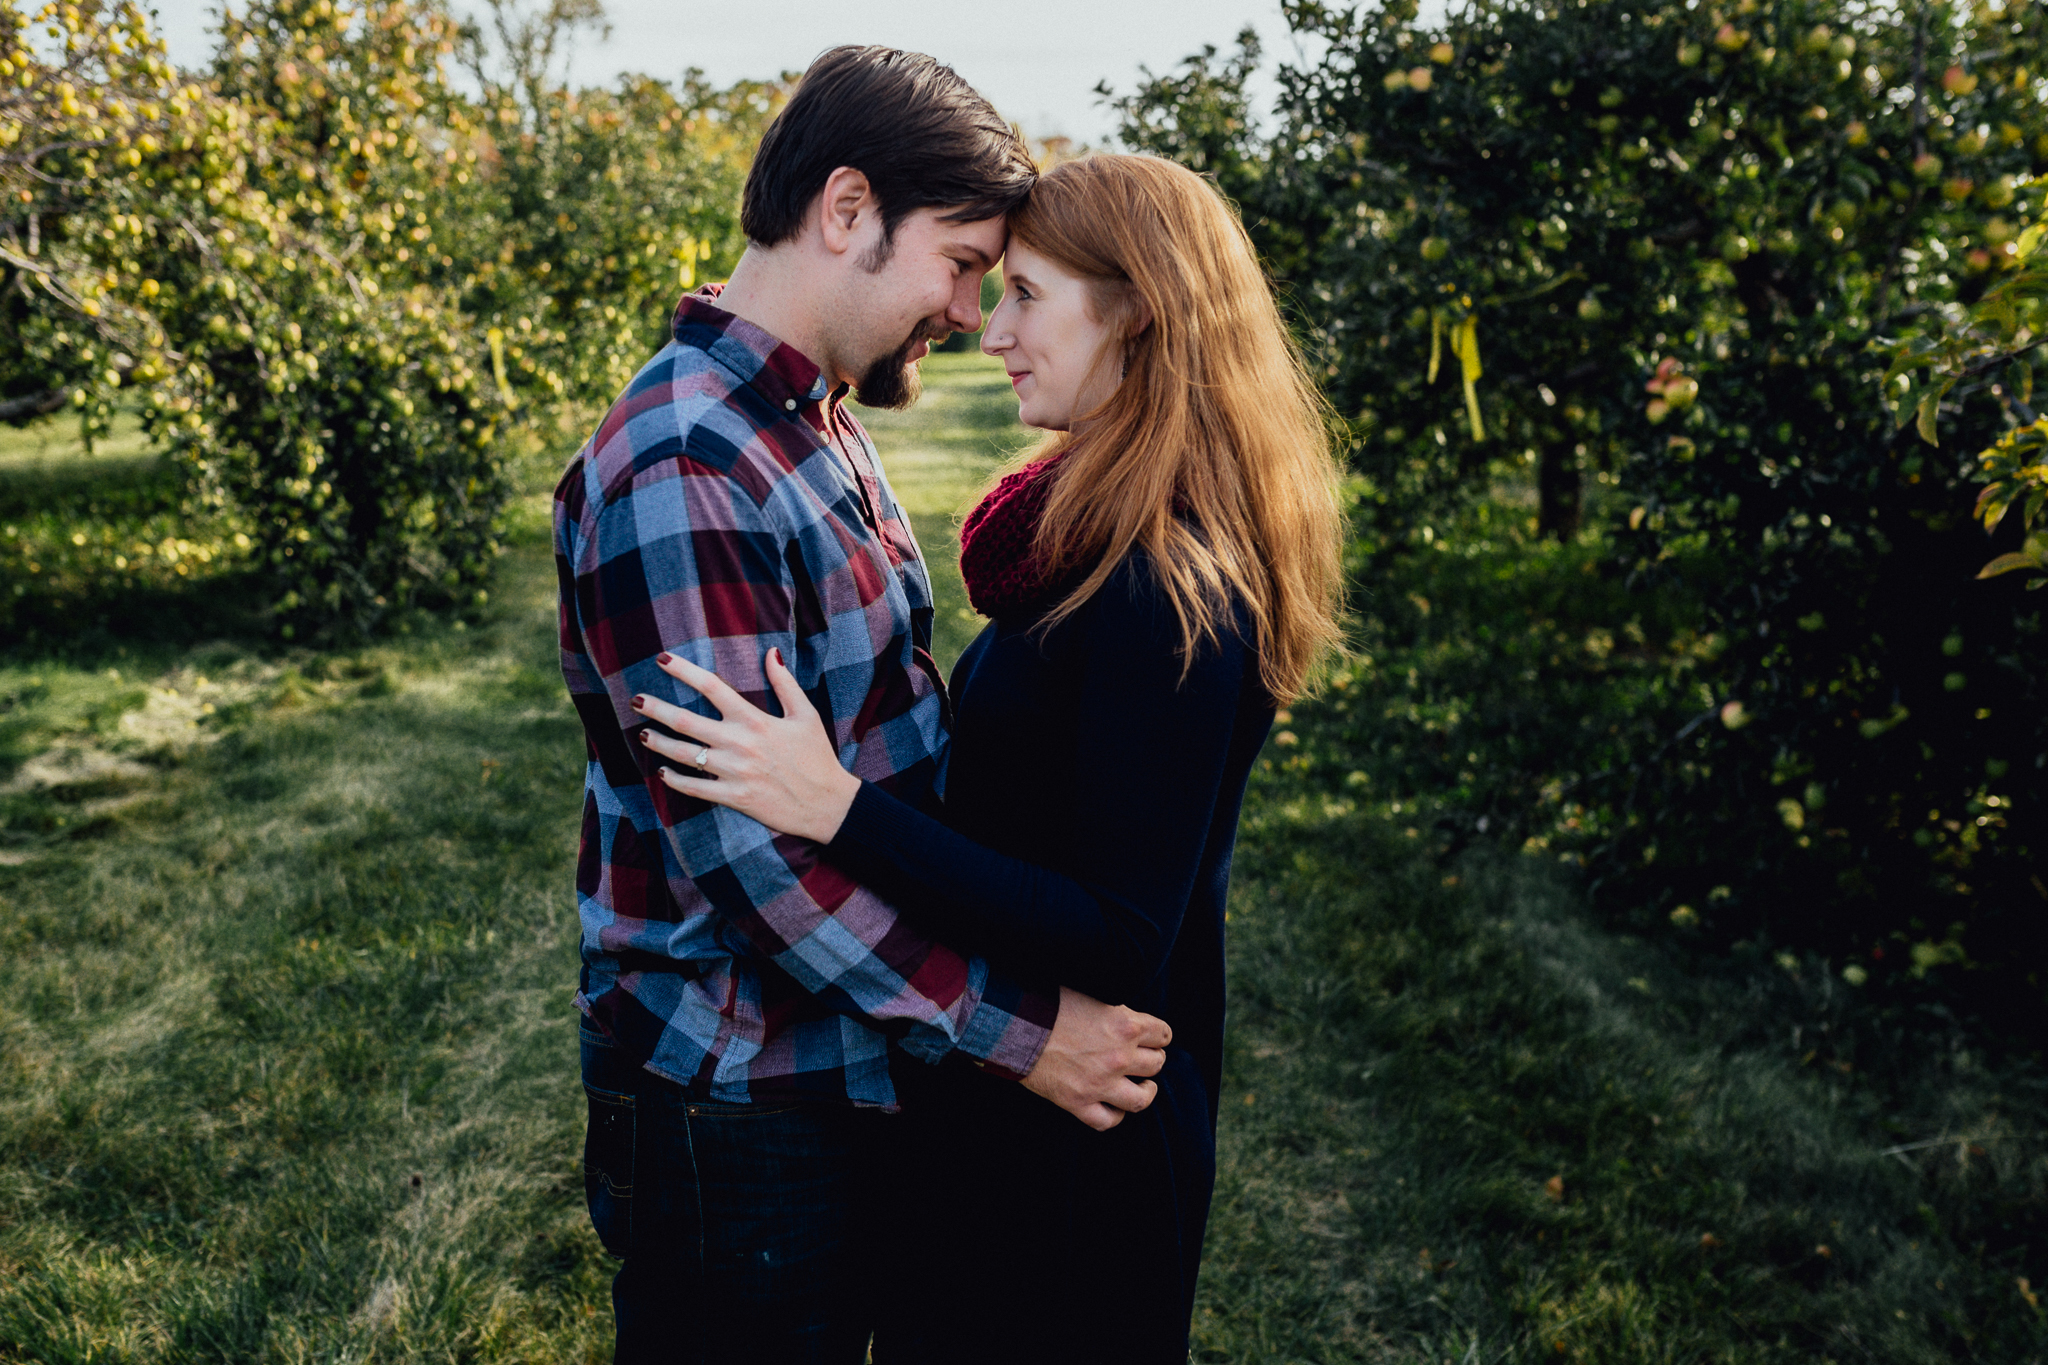 ENGAGEd-couple-kissing-in-apple-orchard.jpg